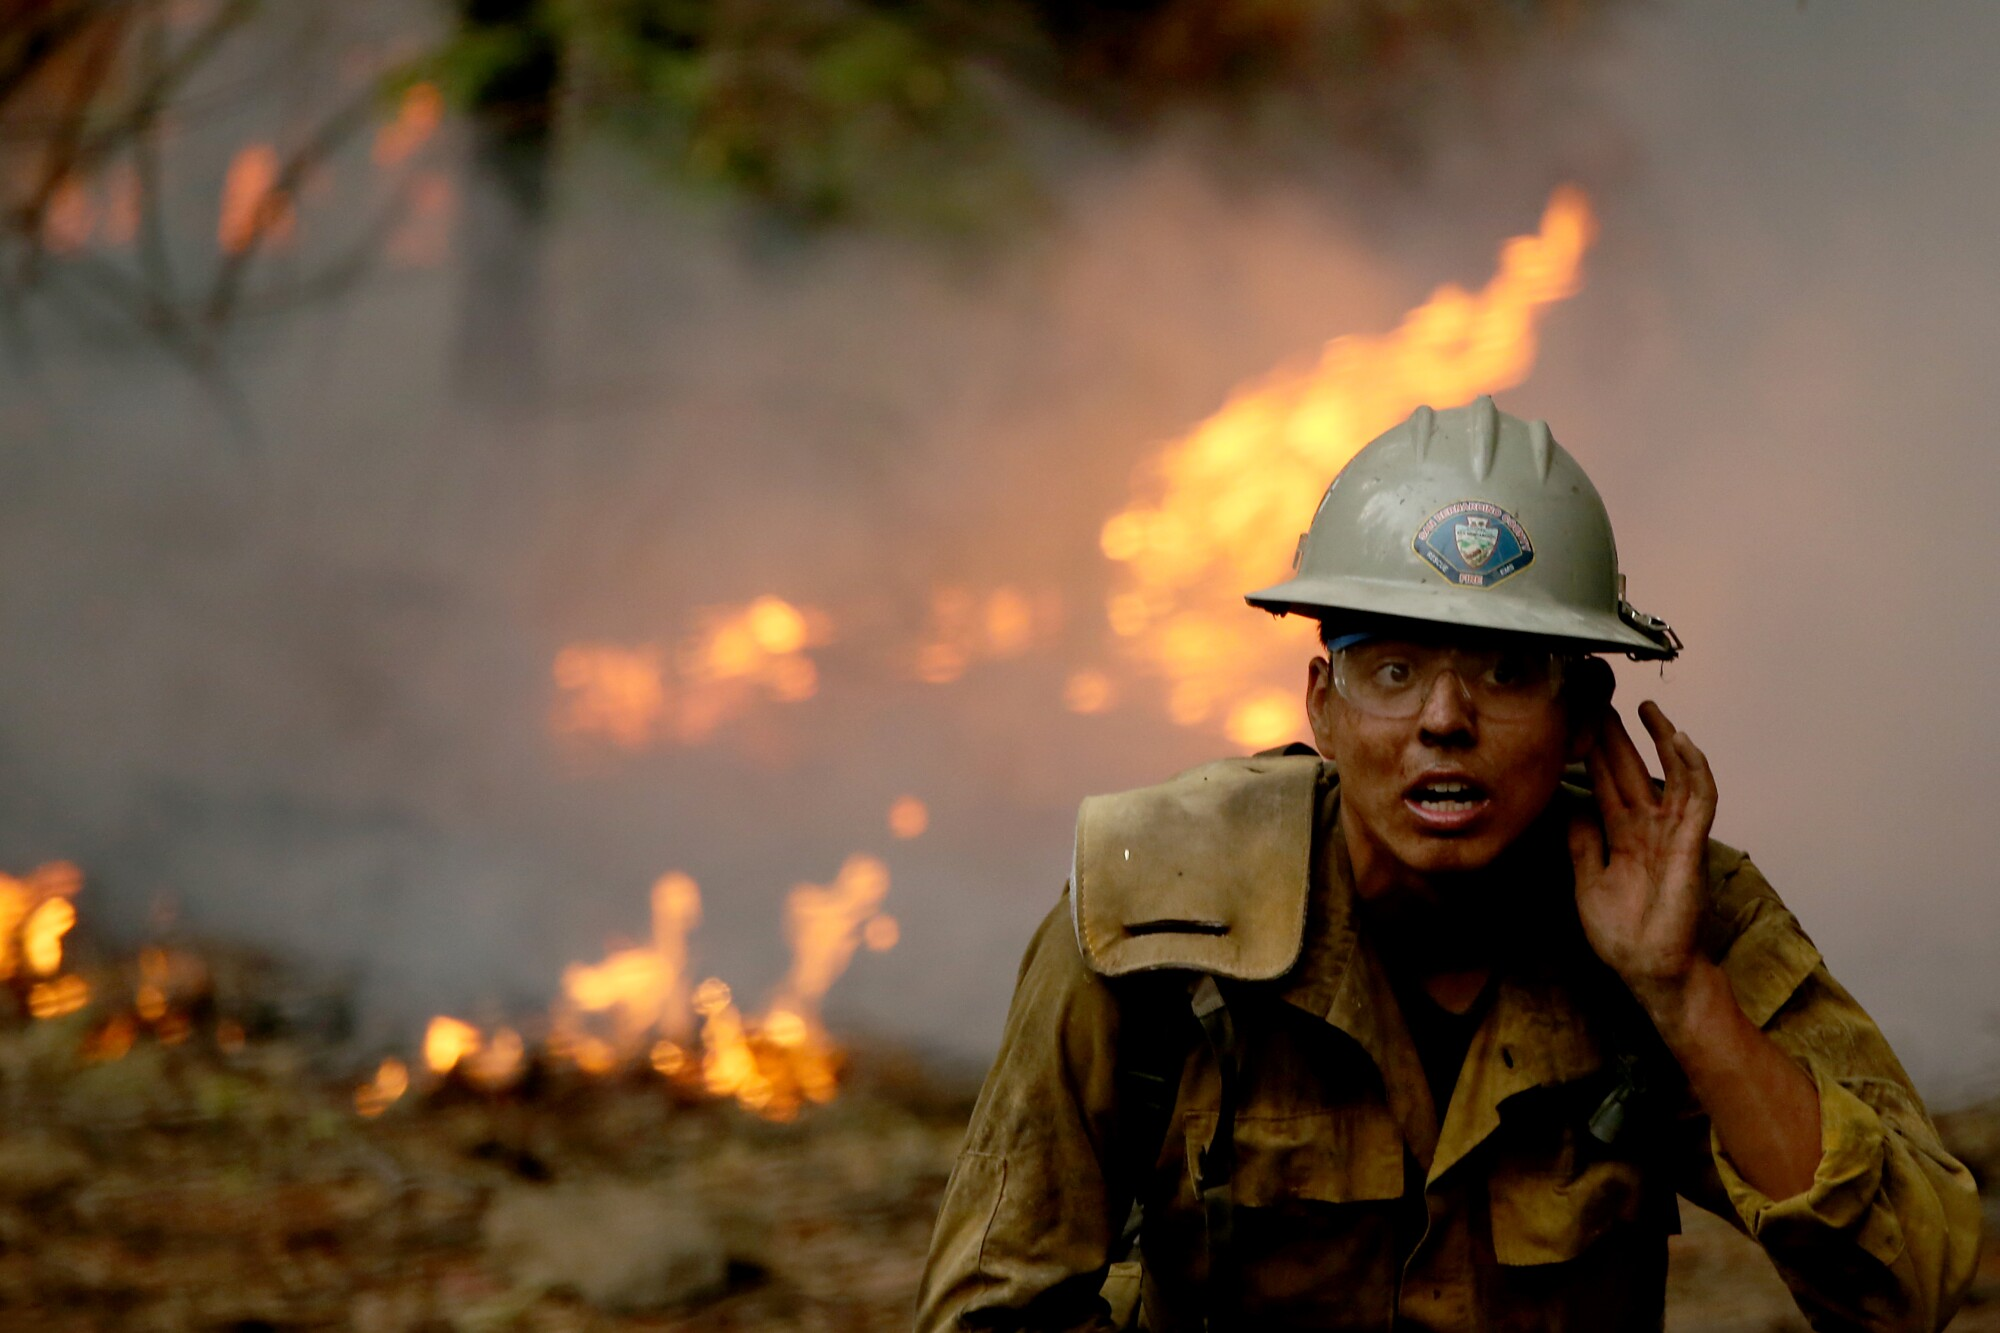 A firefighter holds a hand up to his left ear as he stands in front of flames and smoke